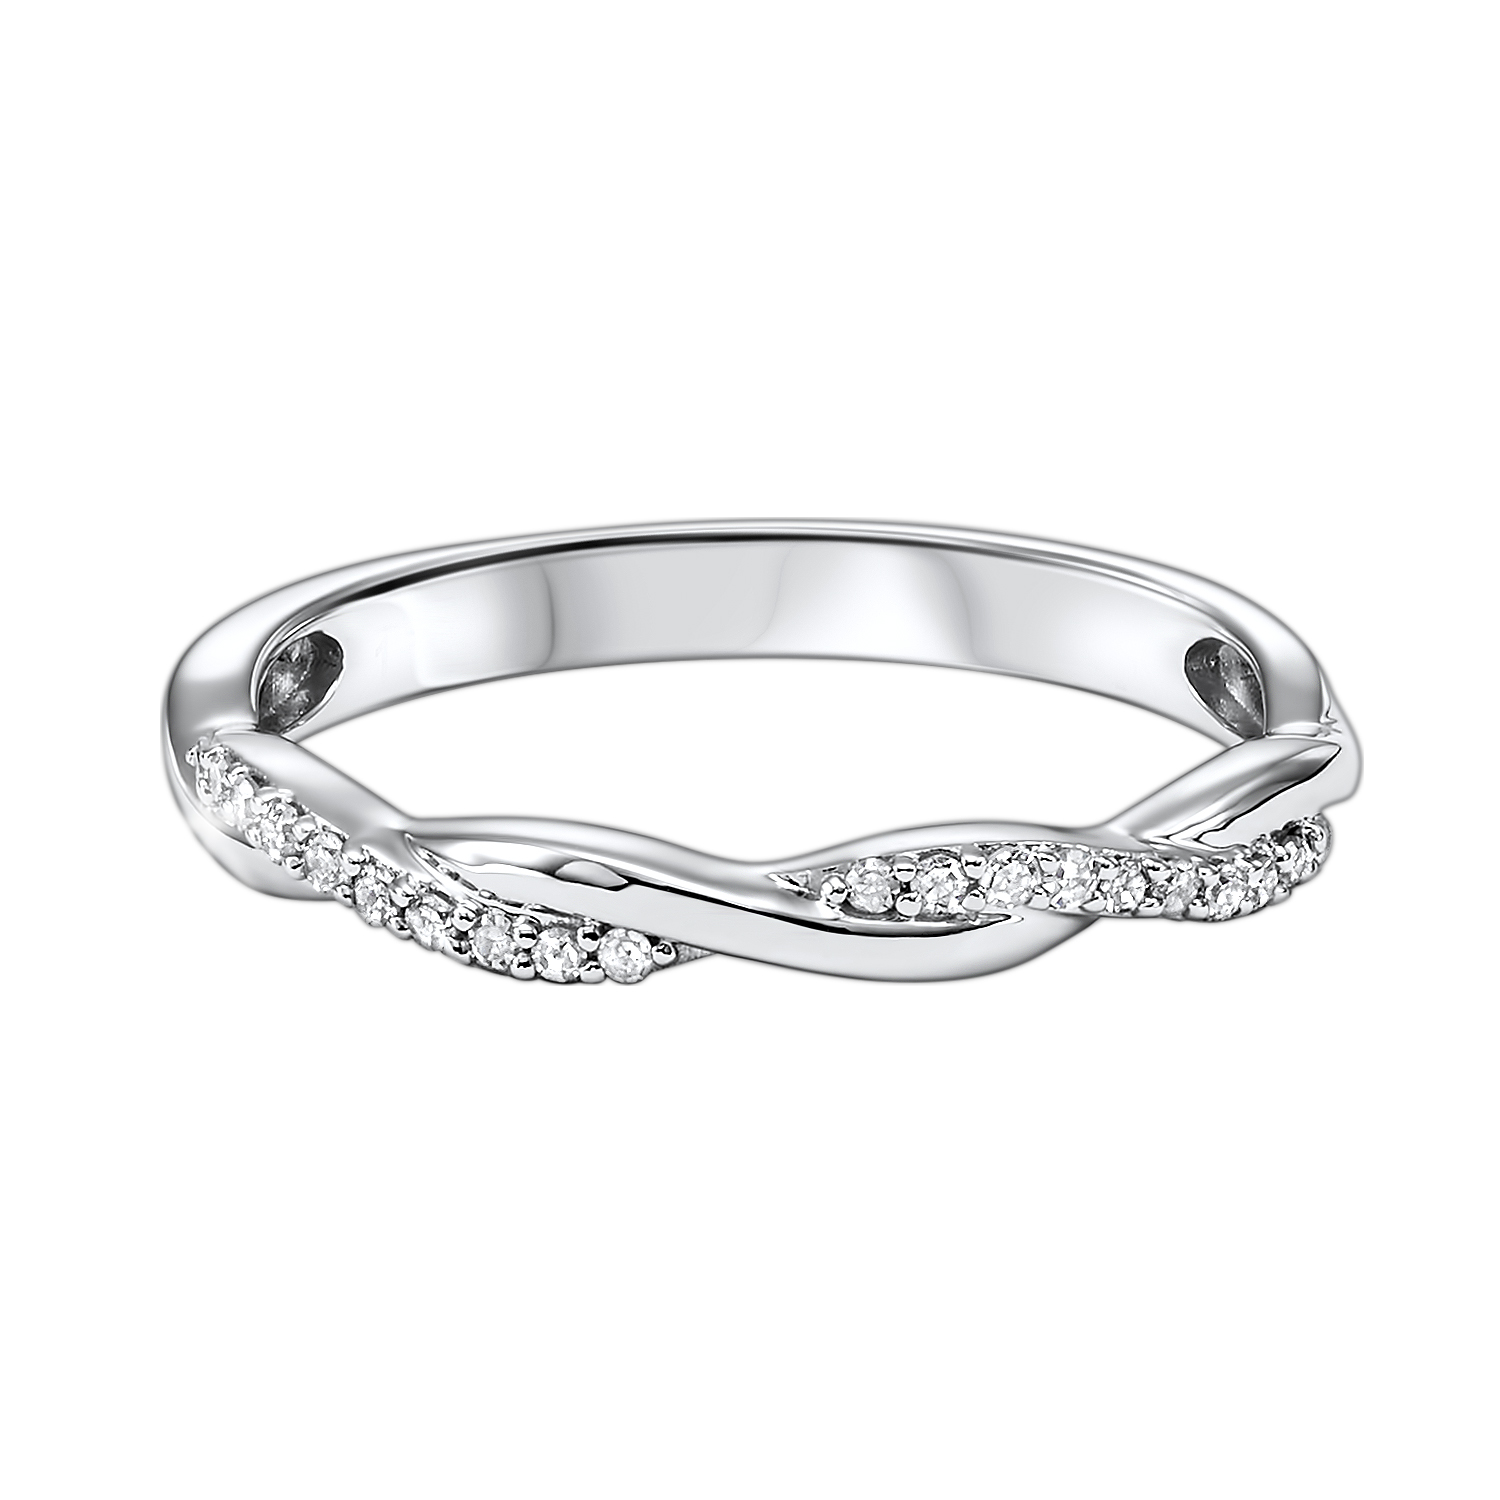 10K White Gold Stackable Prong Diamond Band (1/10 ct. tw.) Moseley Diamond Showcase Inc Columbia, SC